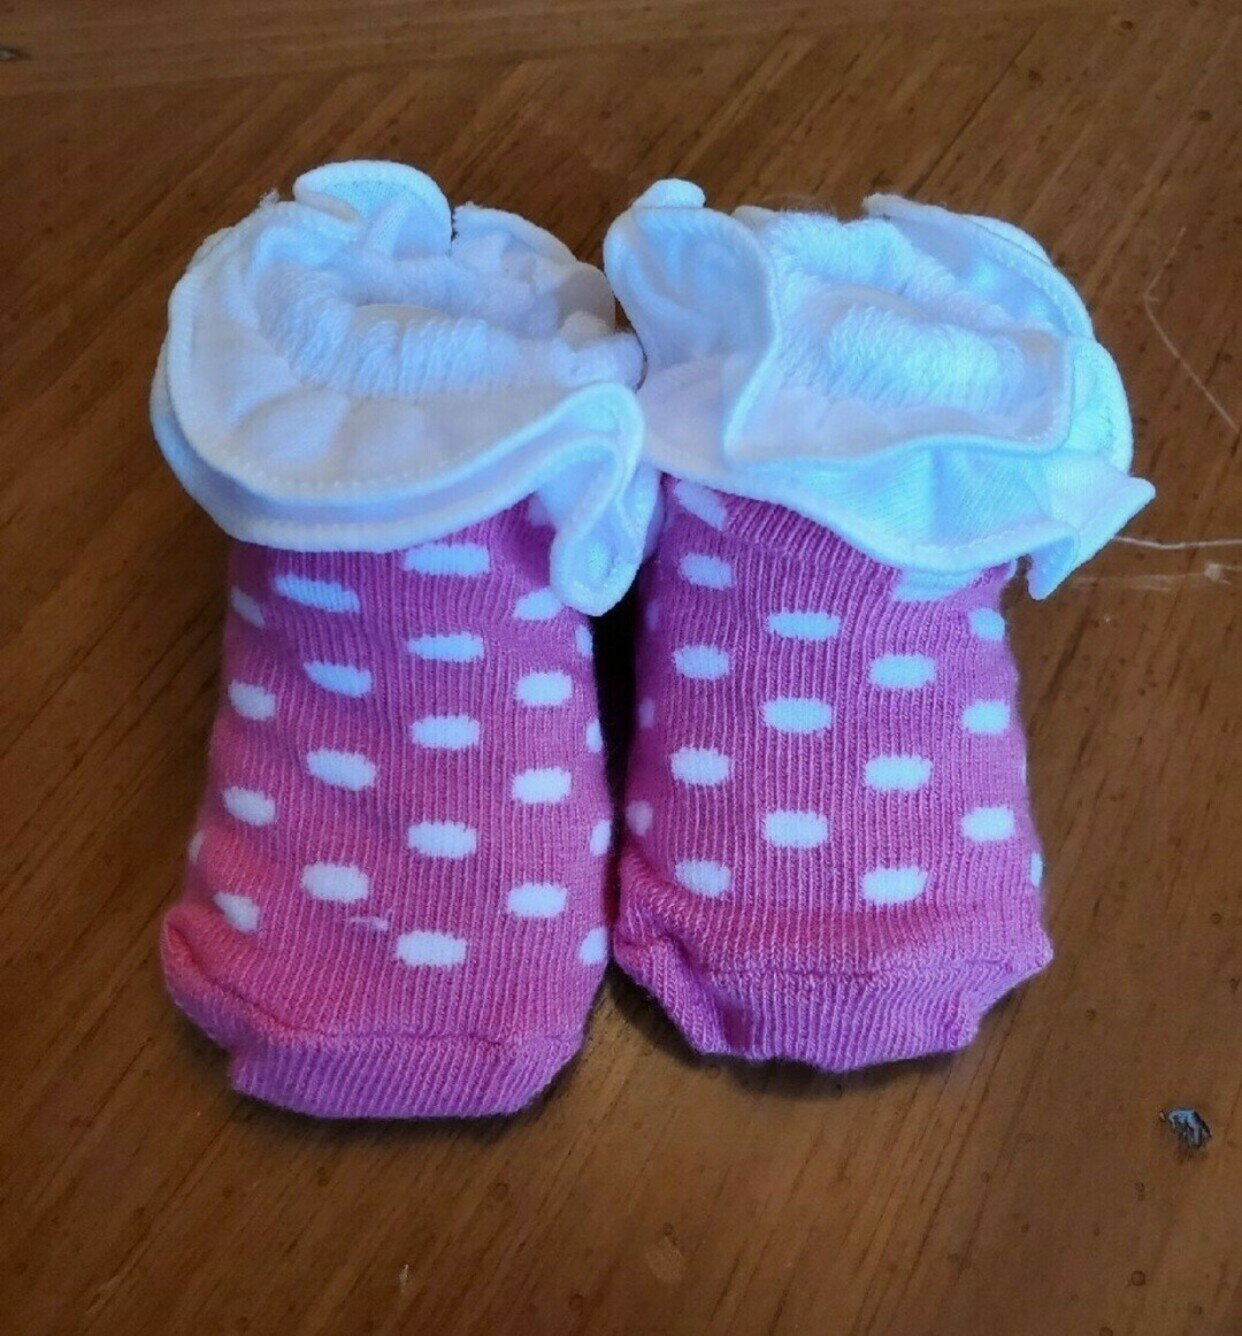 Socks for baby with message